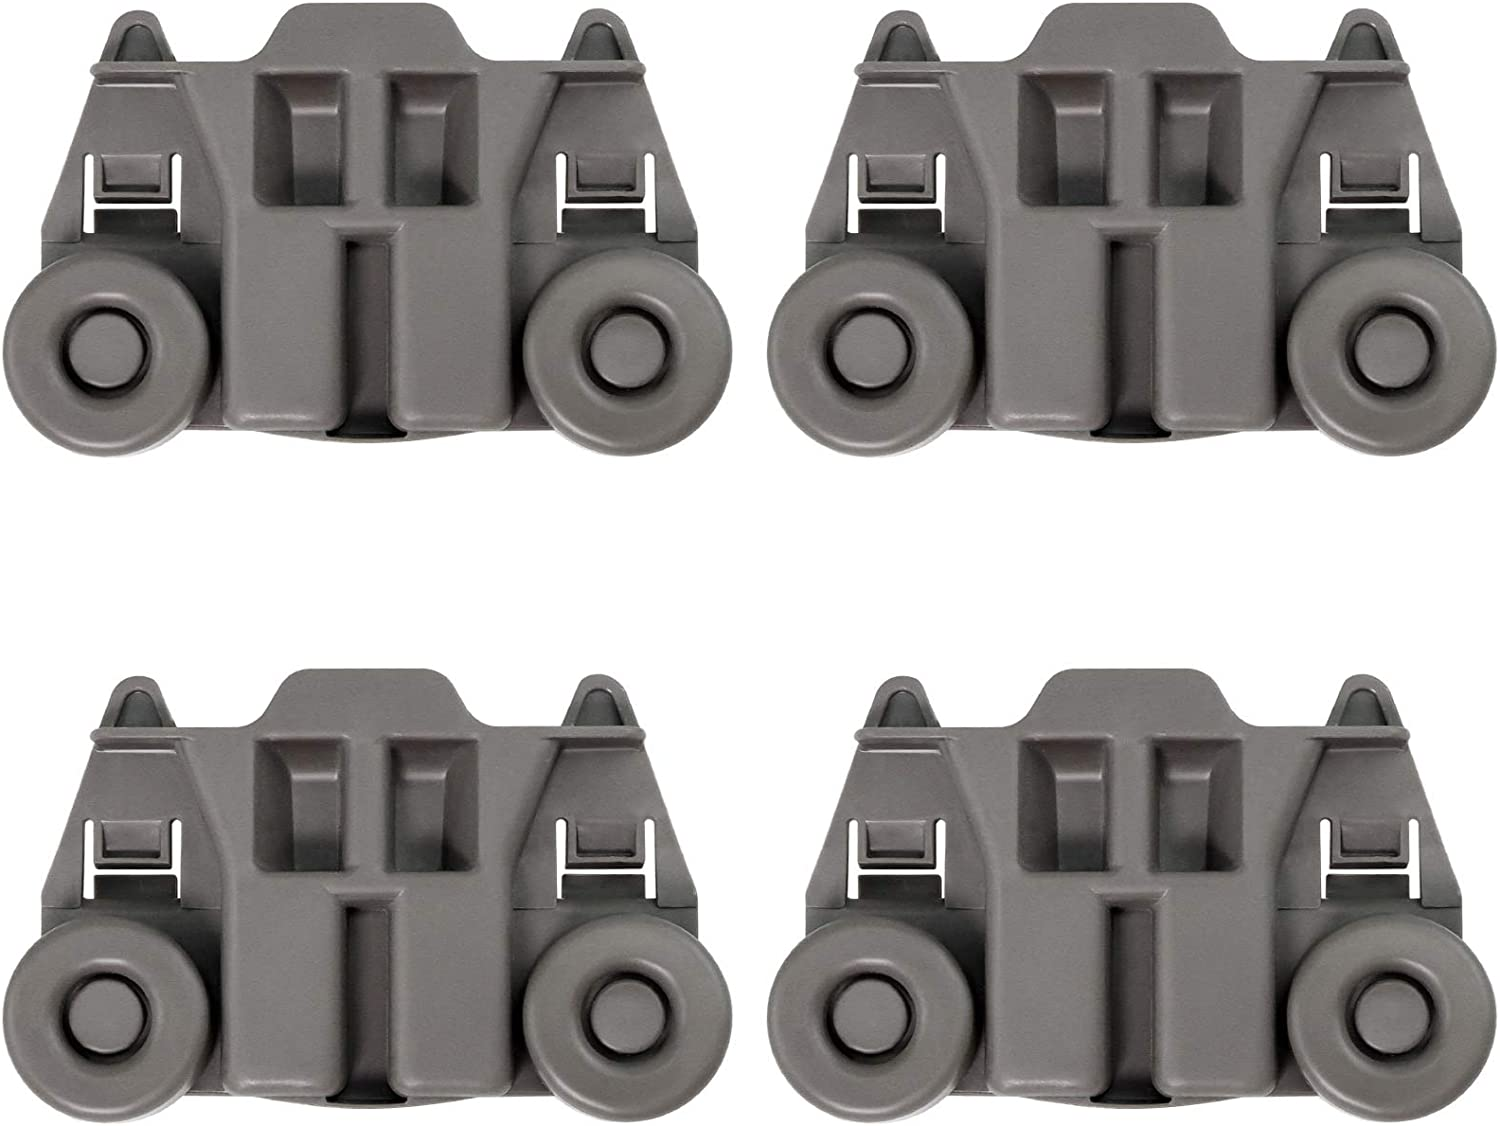 4 PACK W10195417 UPGRADED Super beauty product restock quality top Dishwasher Dish Rack Wheels Roll Super-cheap Lower